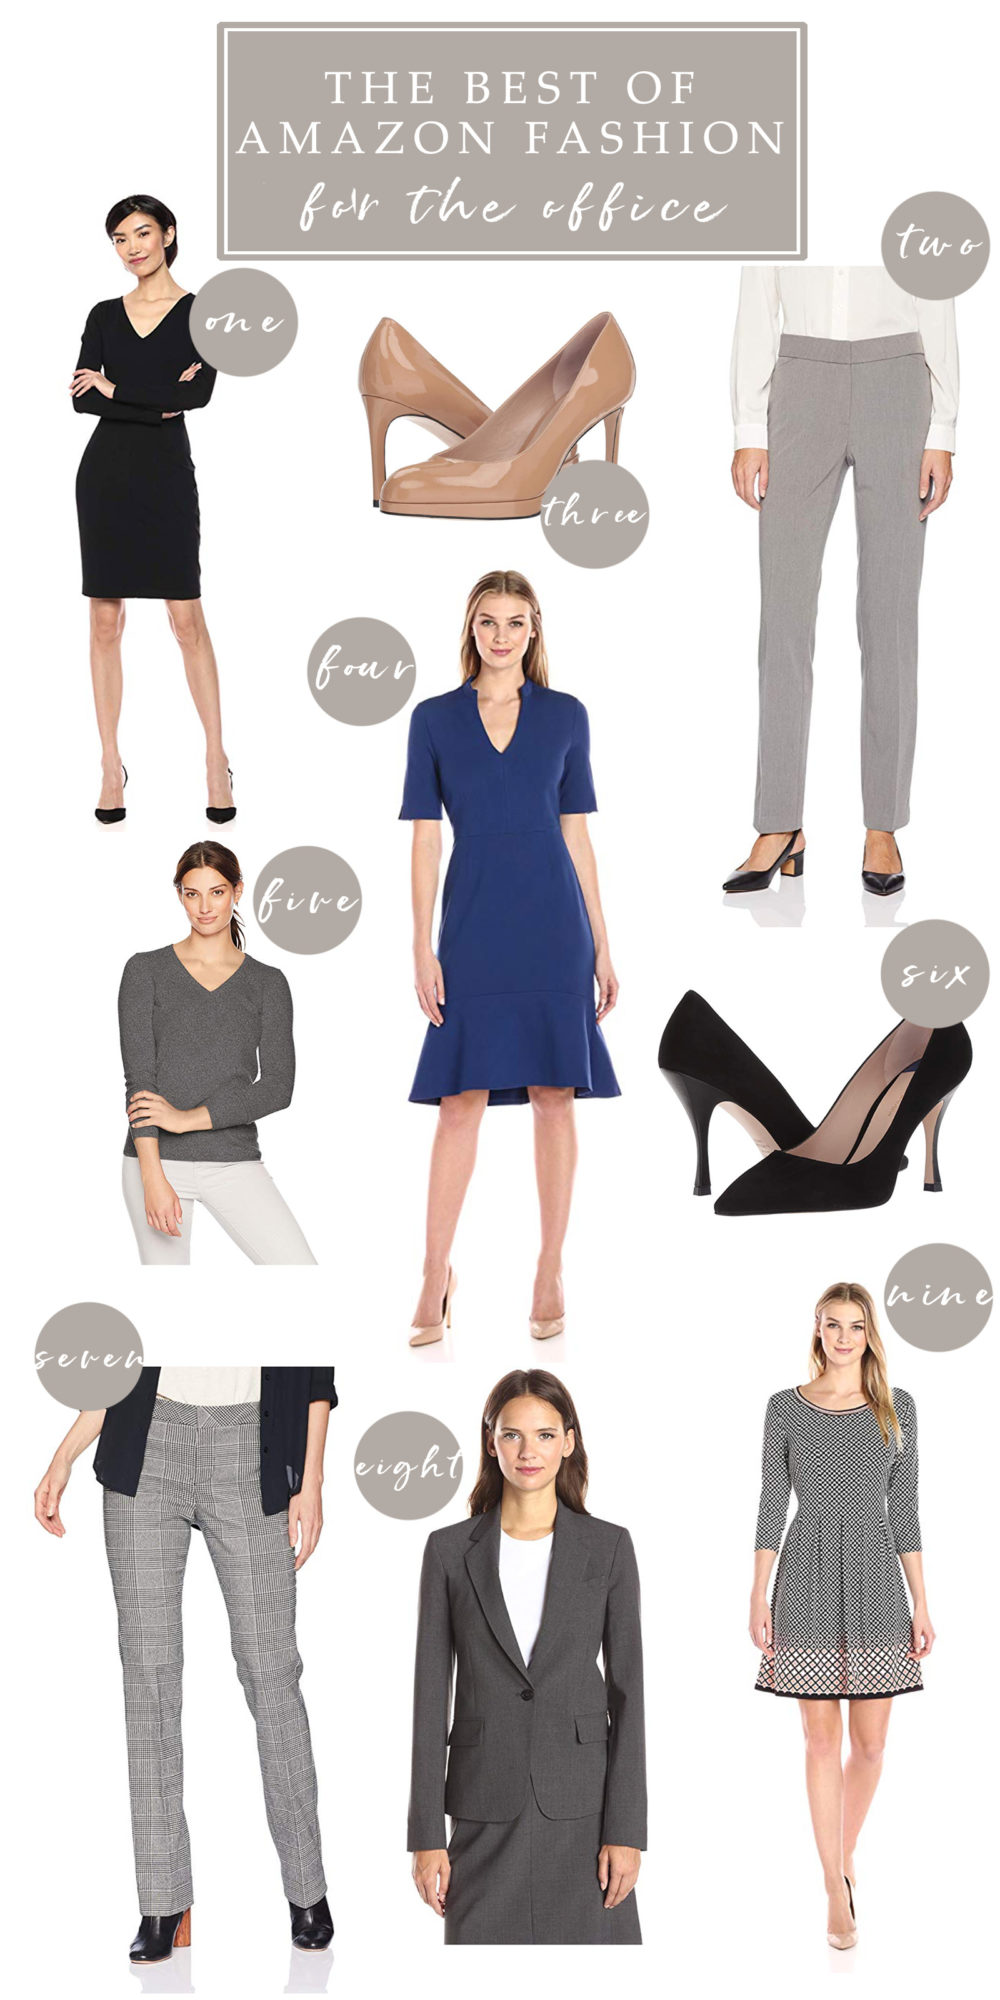 Amazon Fashion | Amazon Prime | Amazon Prime Wardrobe | Work Dresses on Amazon | Work Pants on Amazon